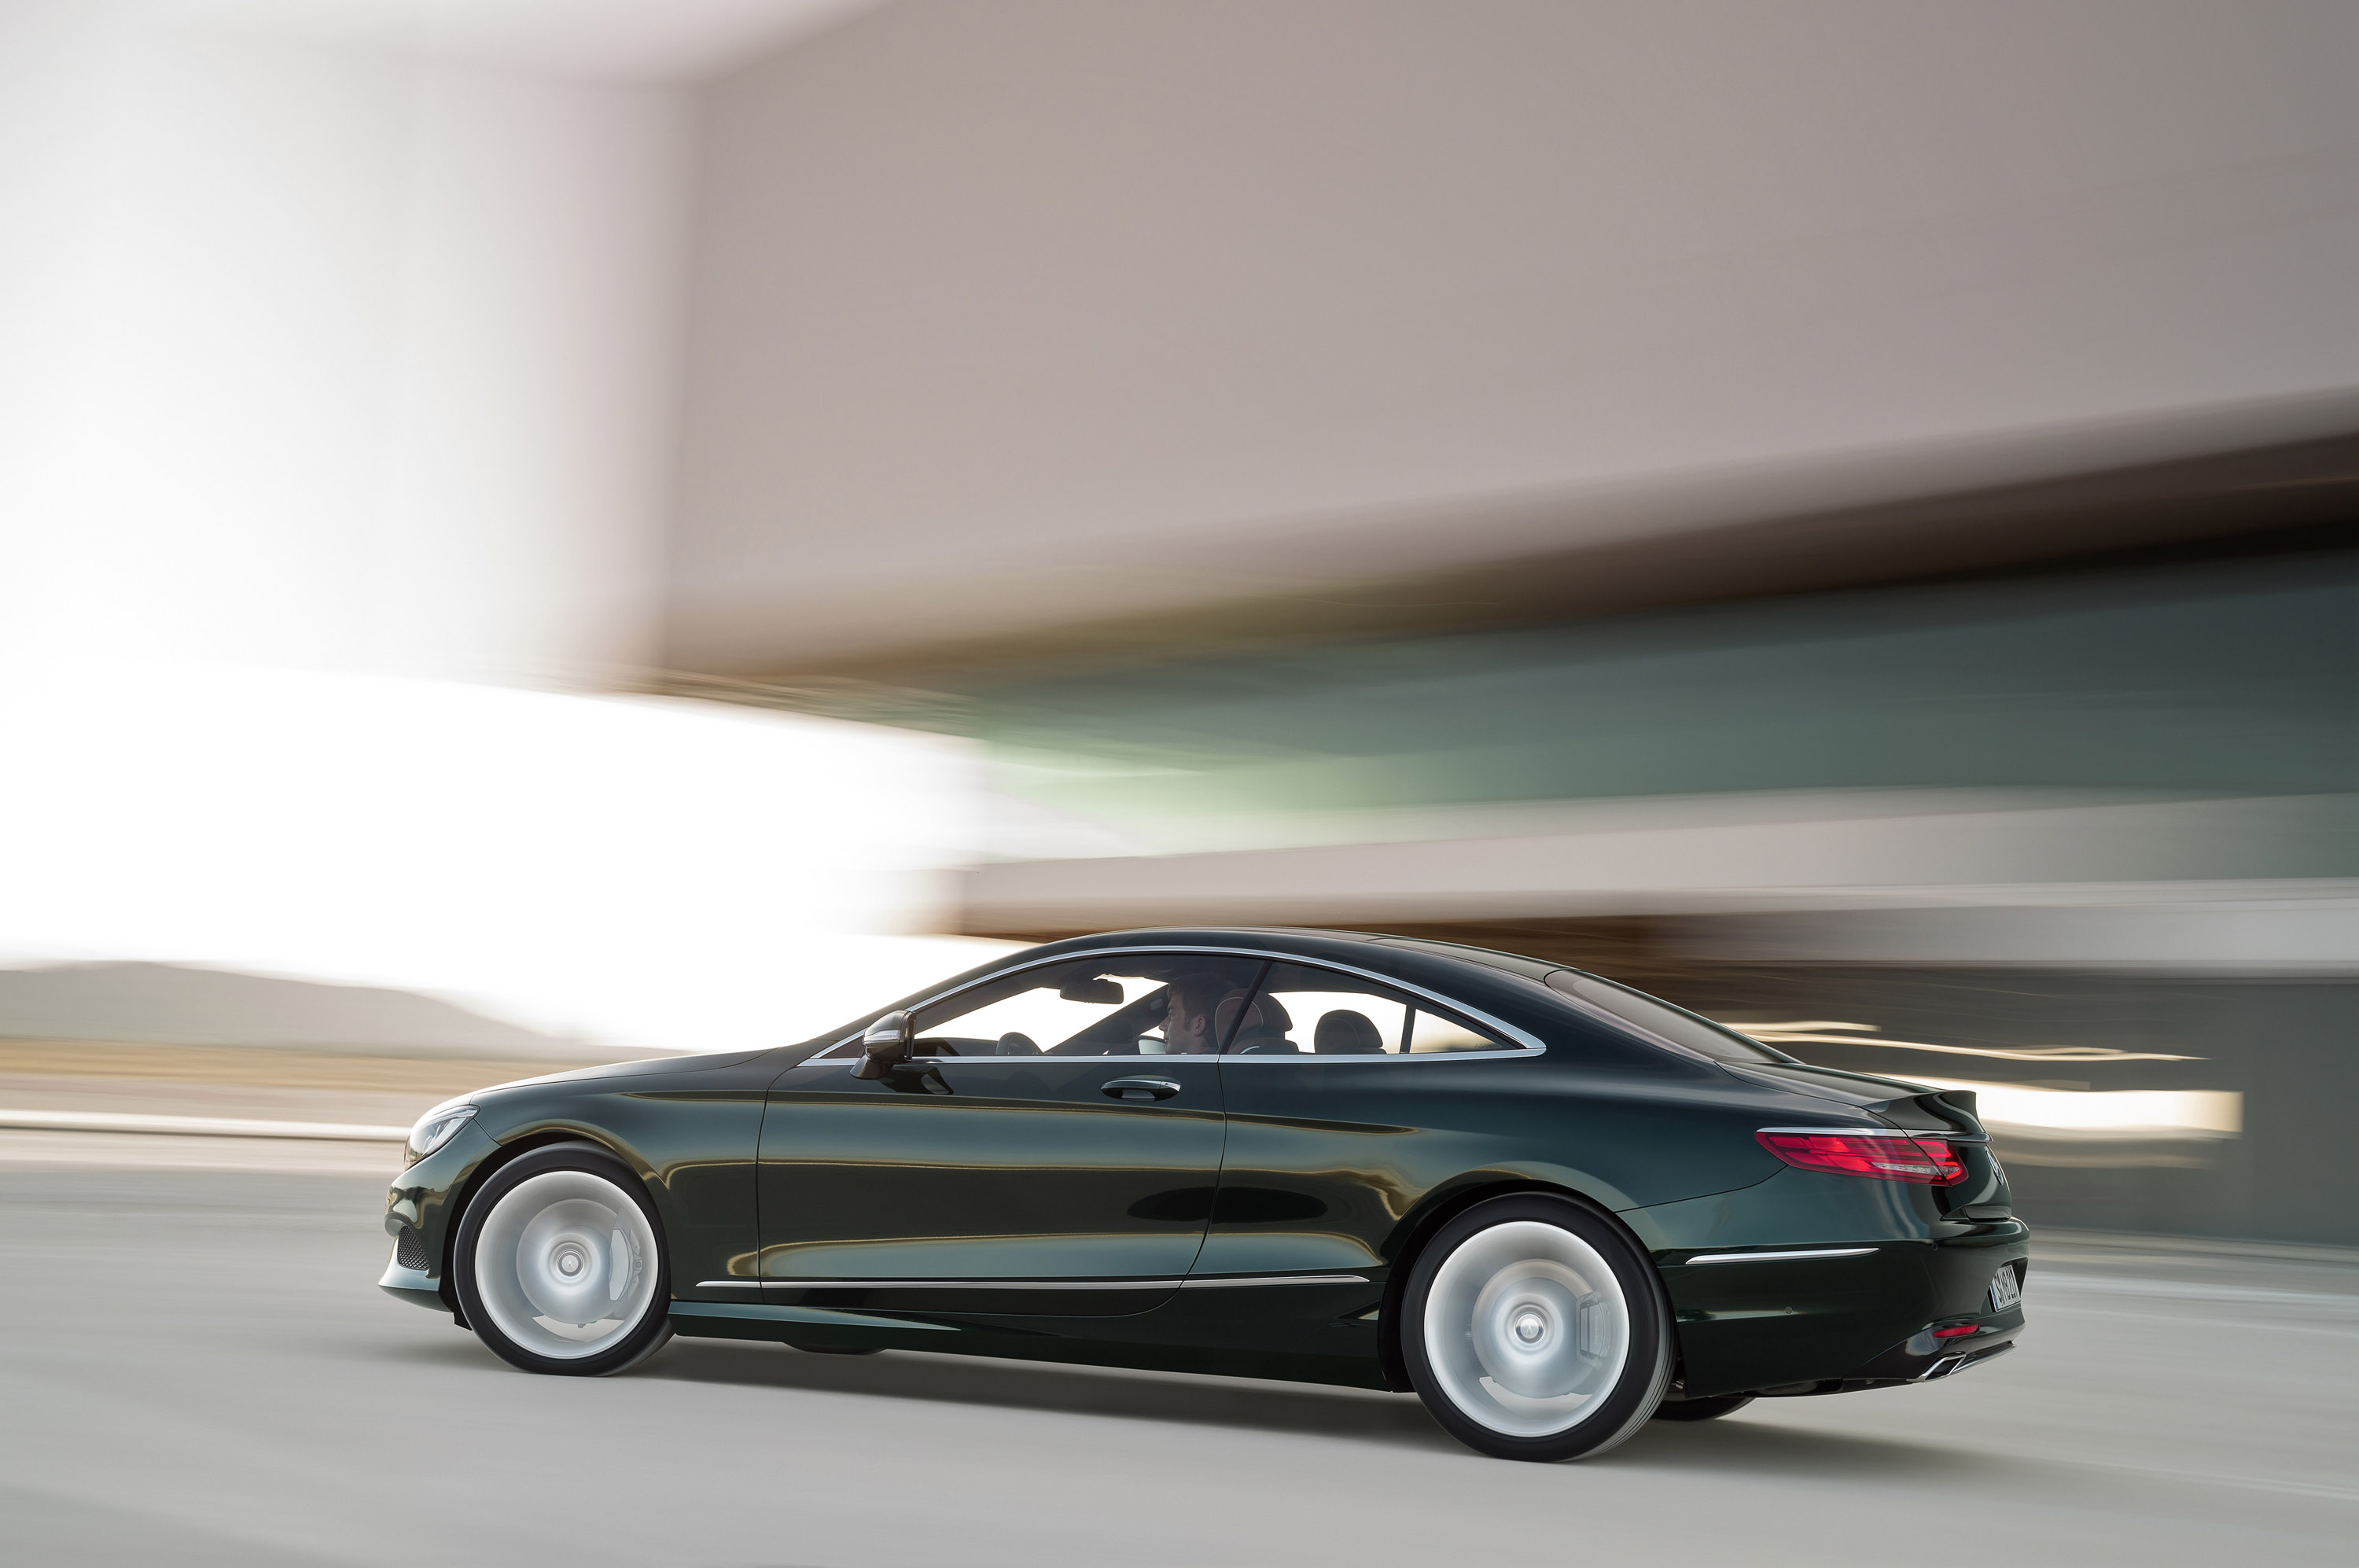 2015 mercedes benz s class coupe full details for Mercedes benz s coupe 2015